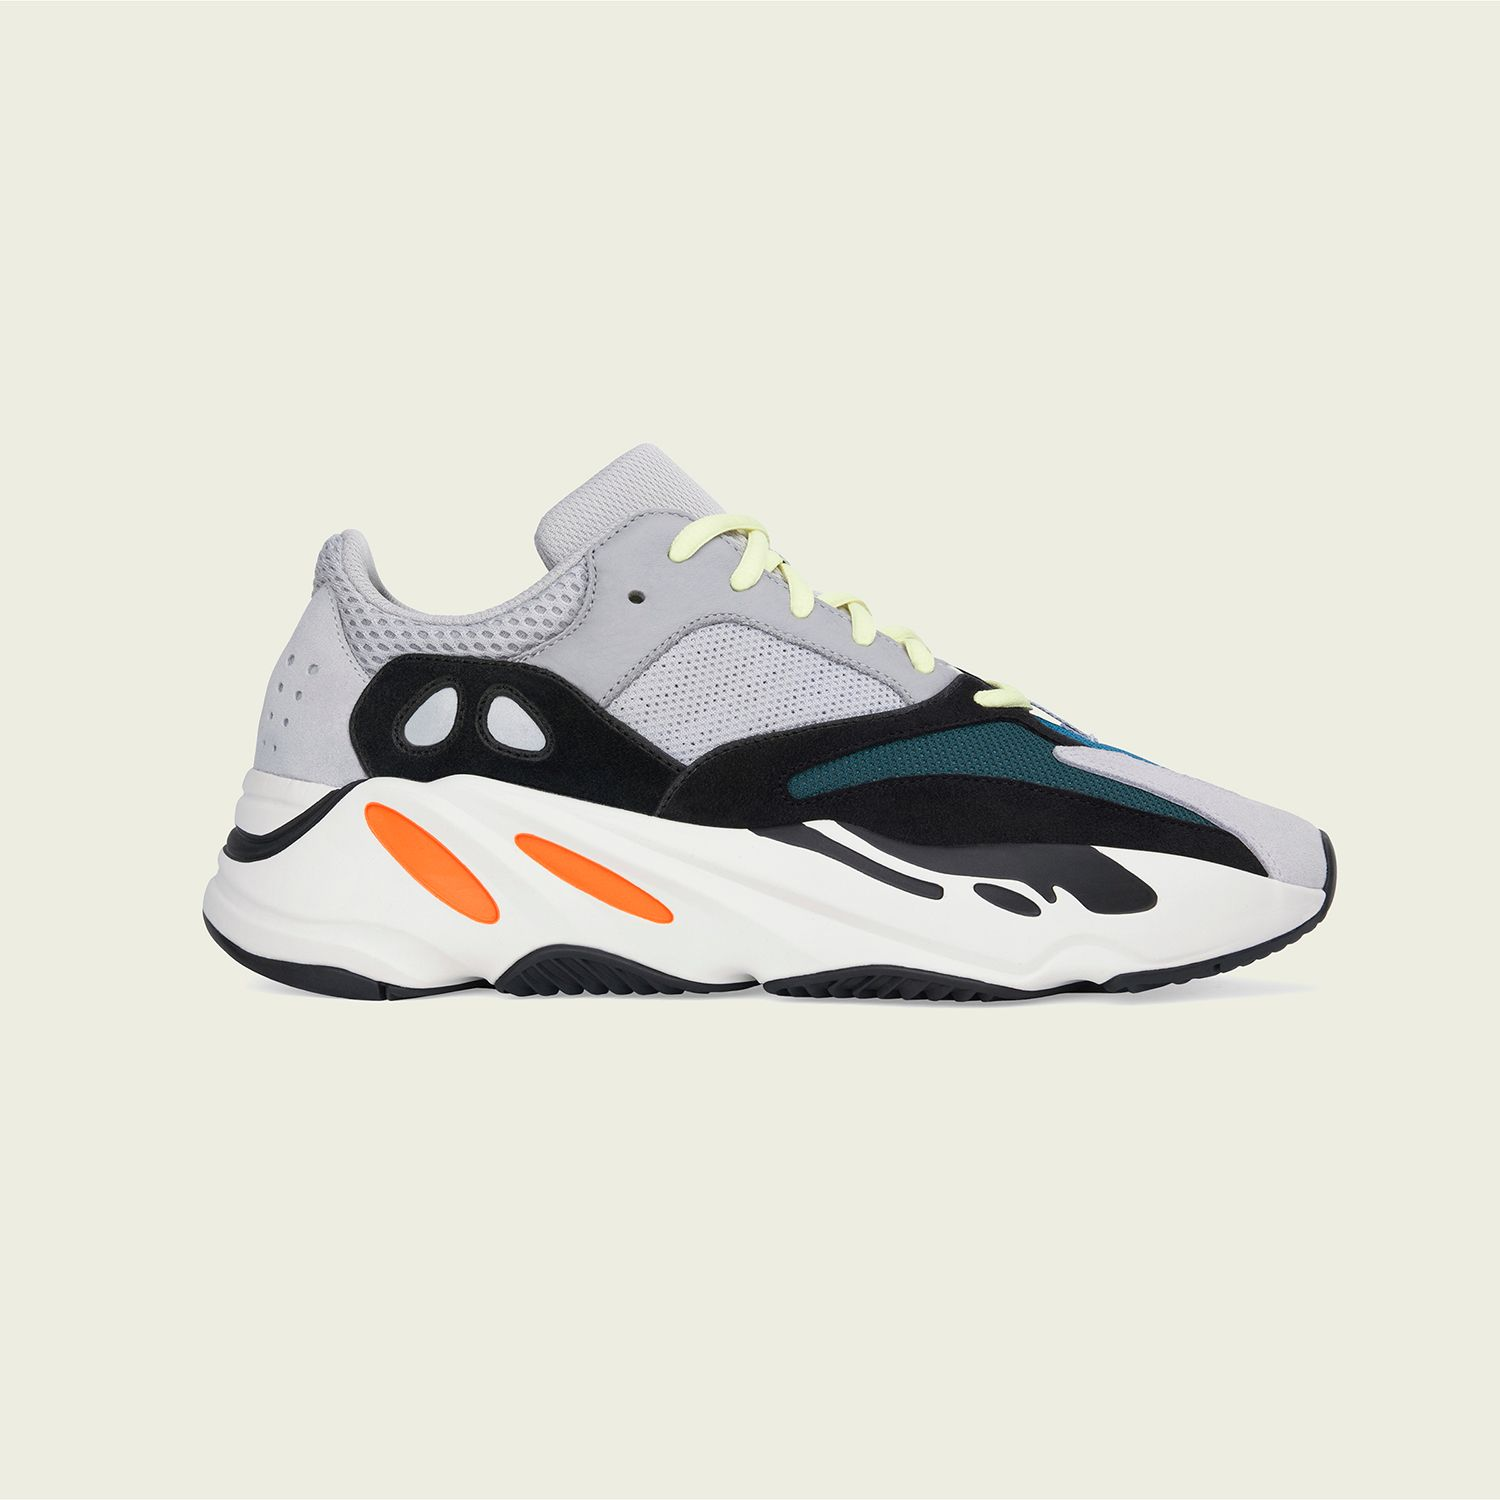 Yeezy Wave Runner 700 Solid Grey [1]